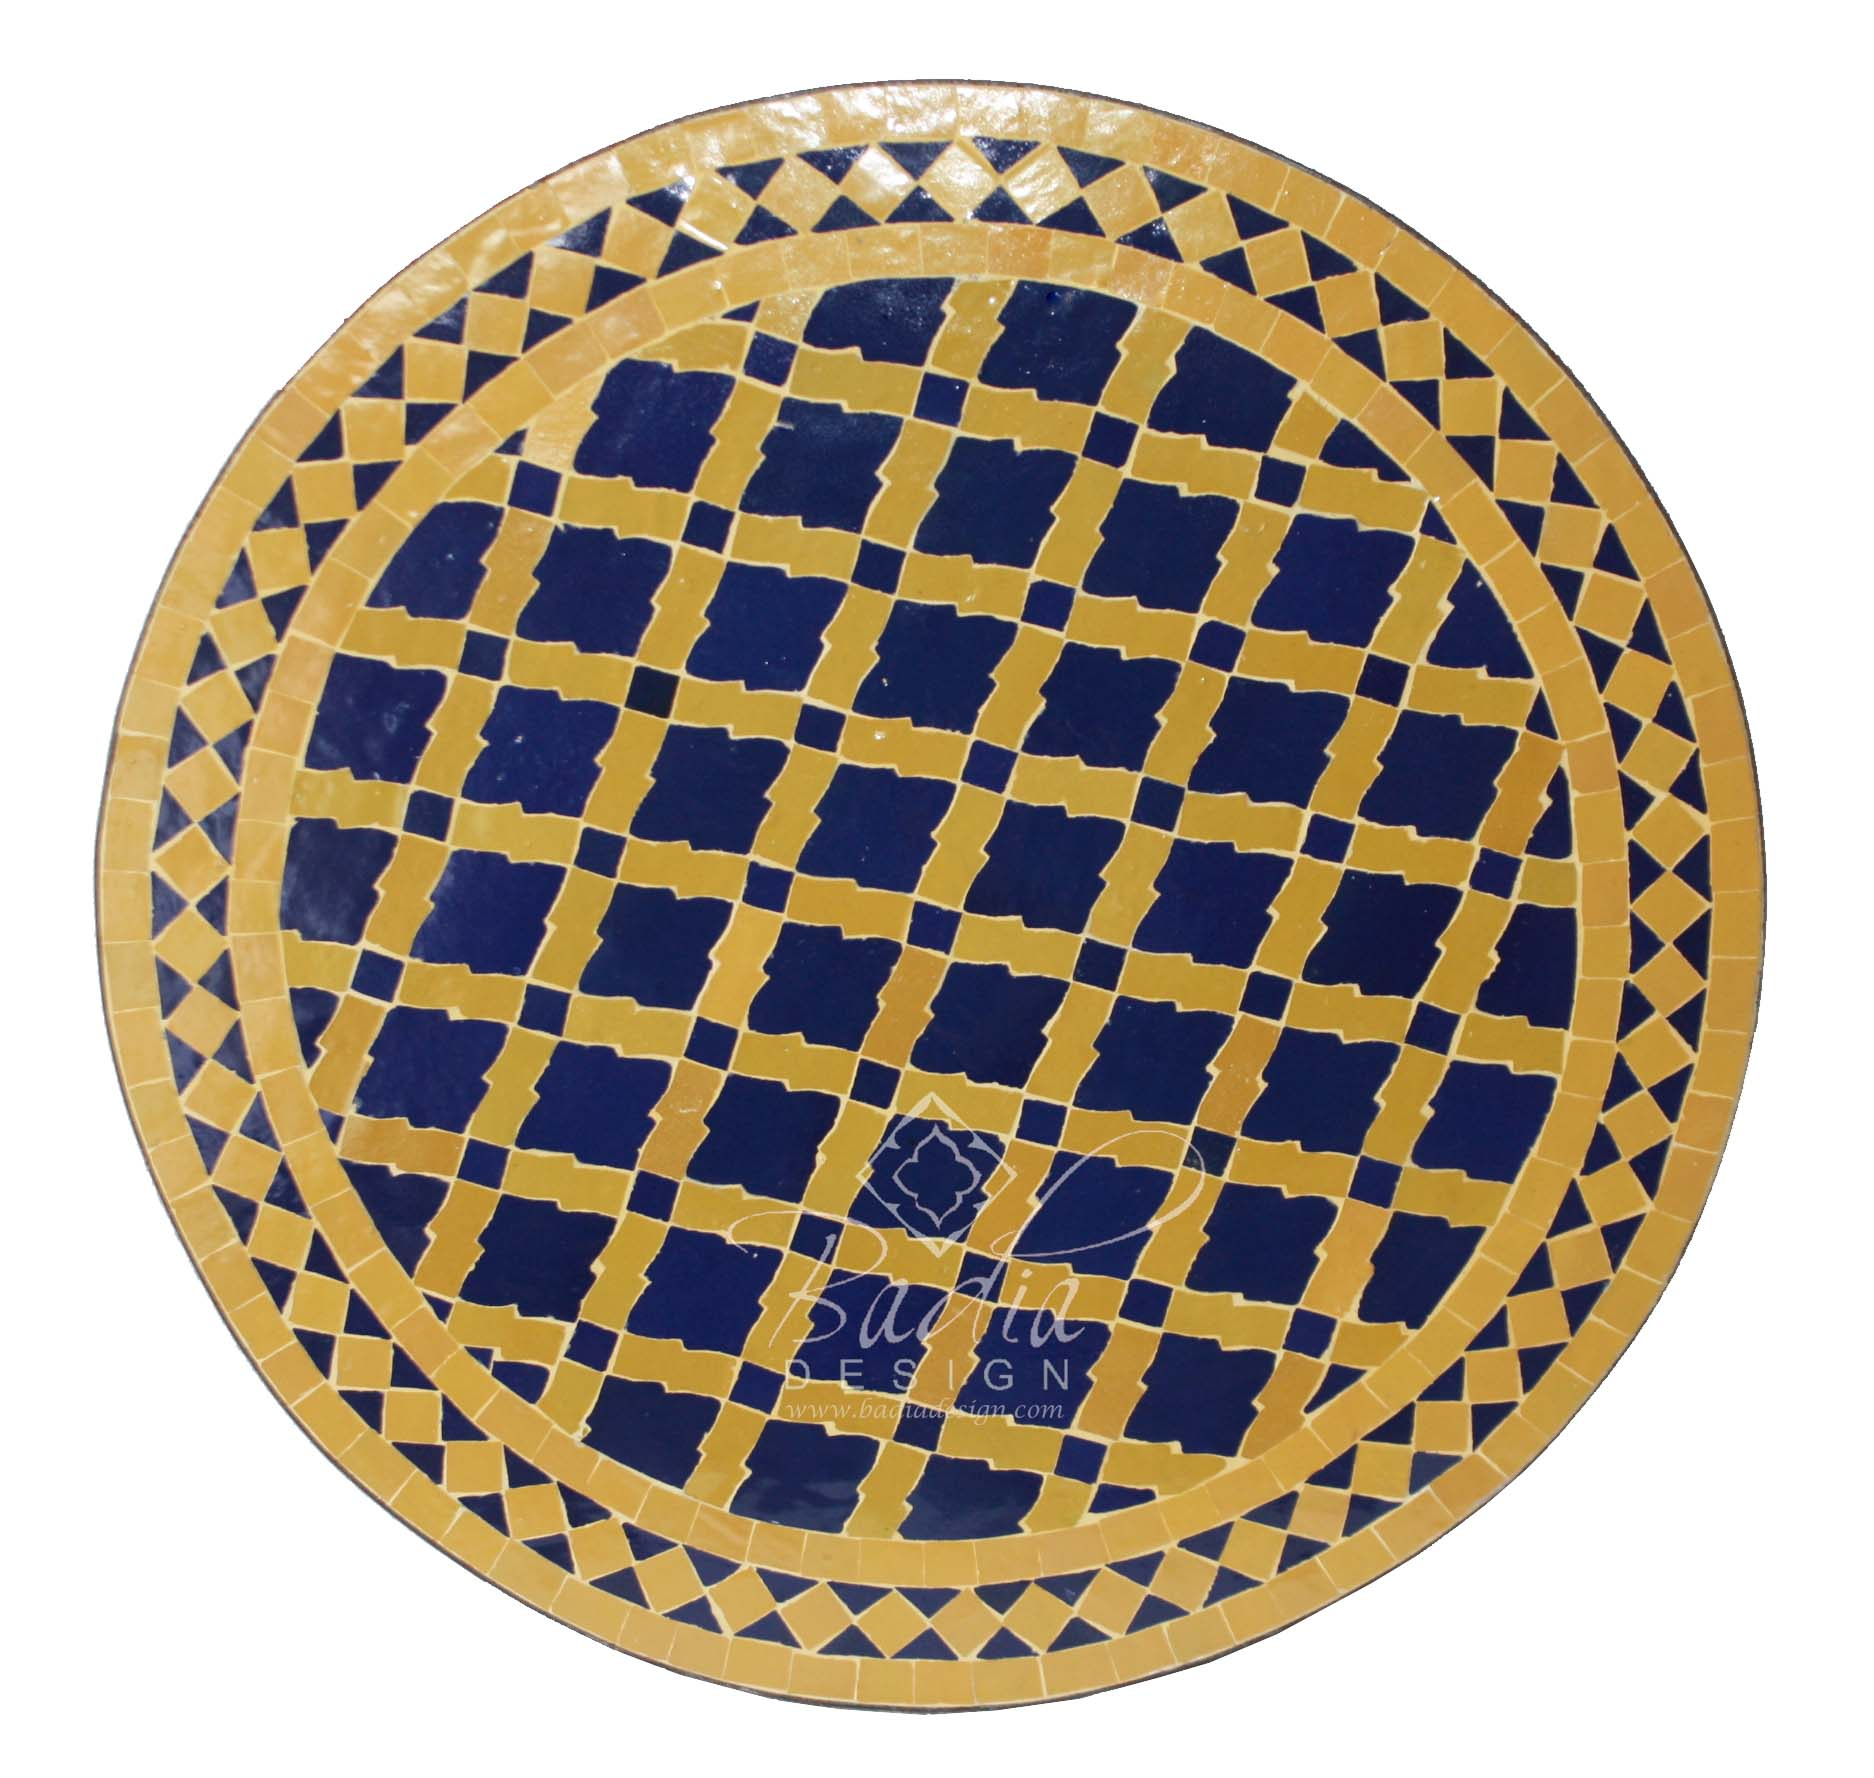 24-inch-intricately-designed-round-tile-table-top-mtr259.jpg